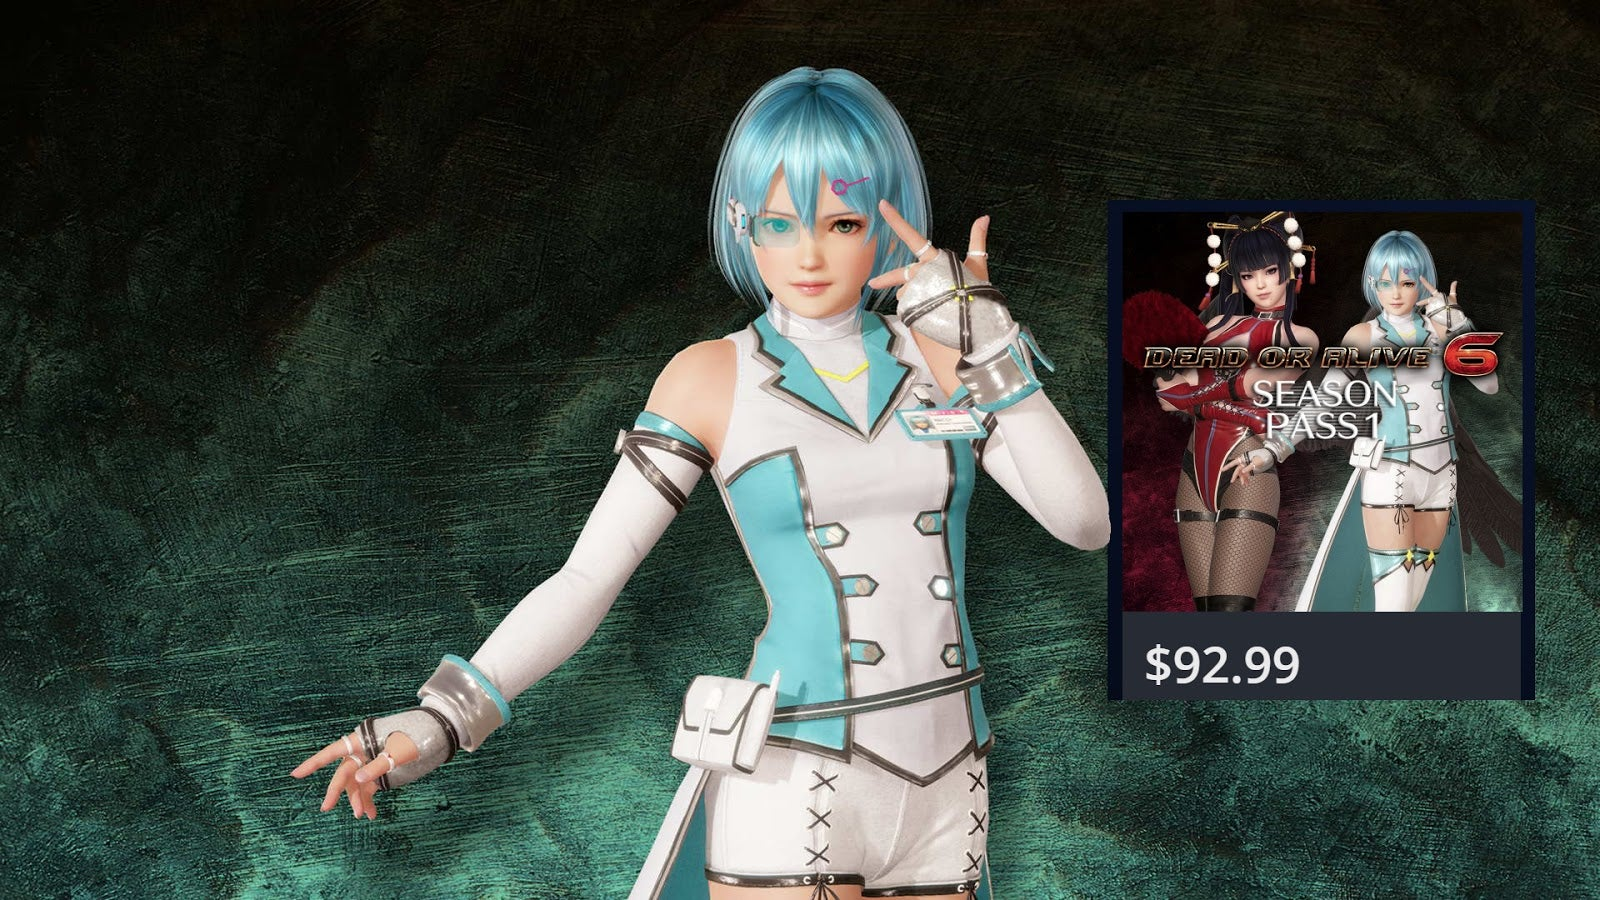 The FirstDead Or Alive 6Season Pass Costs $135